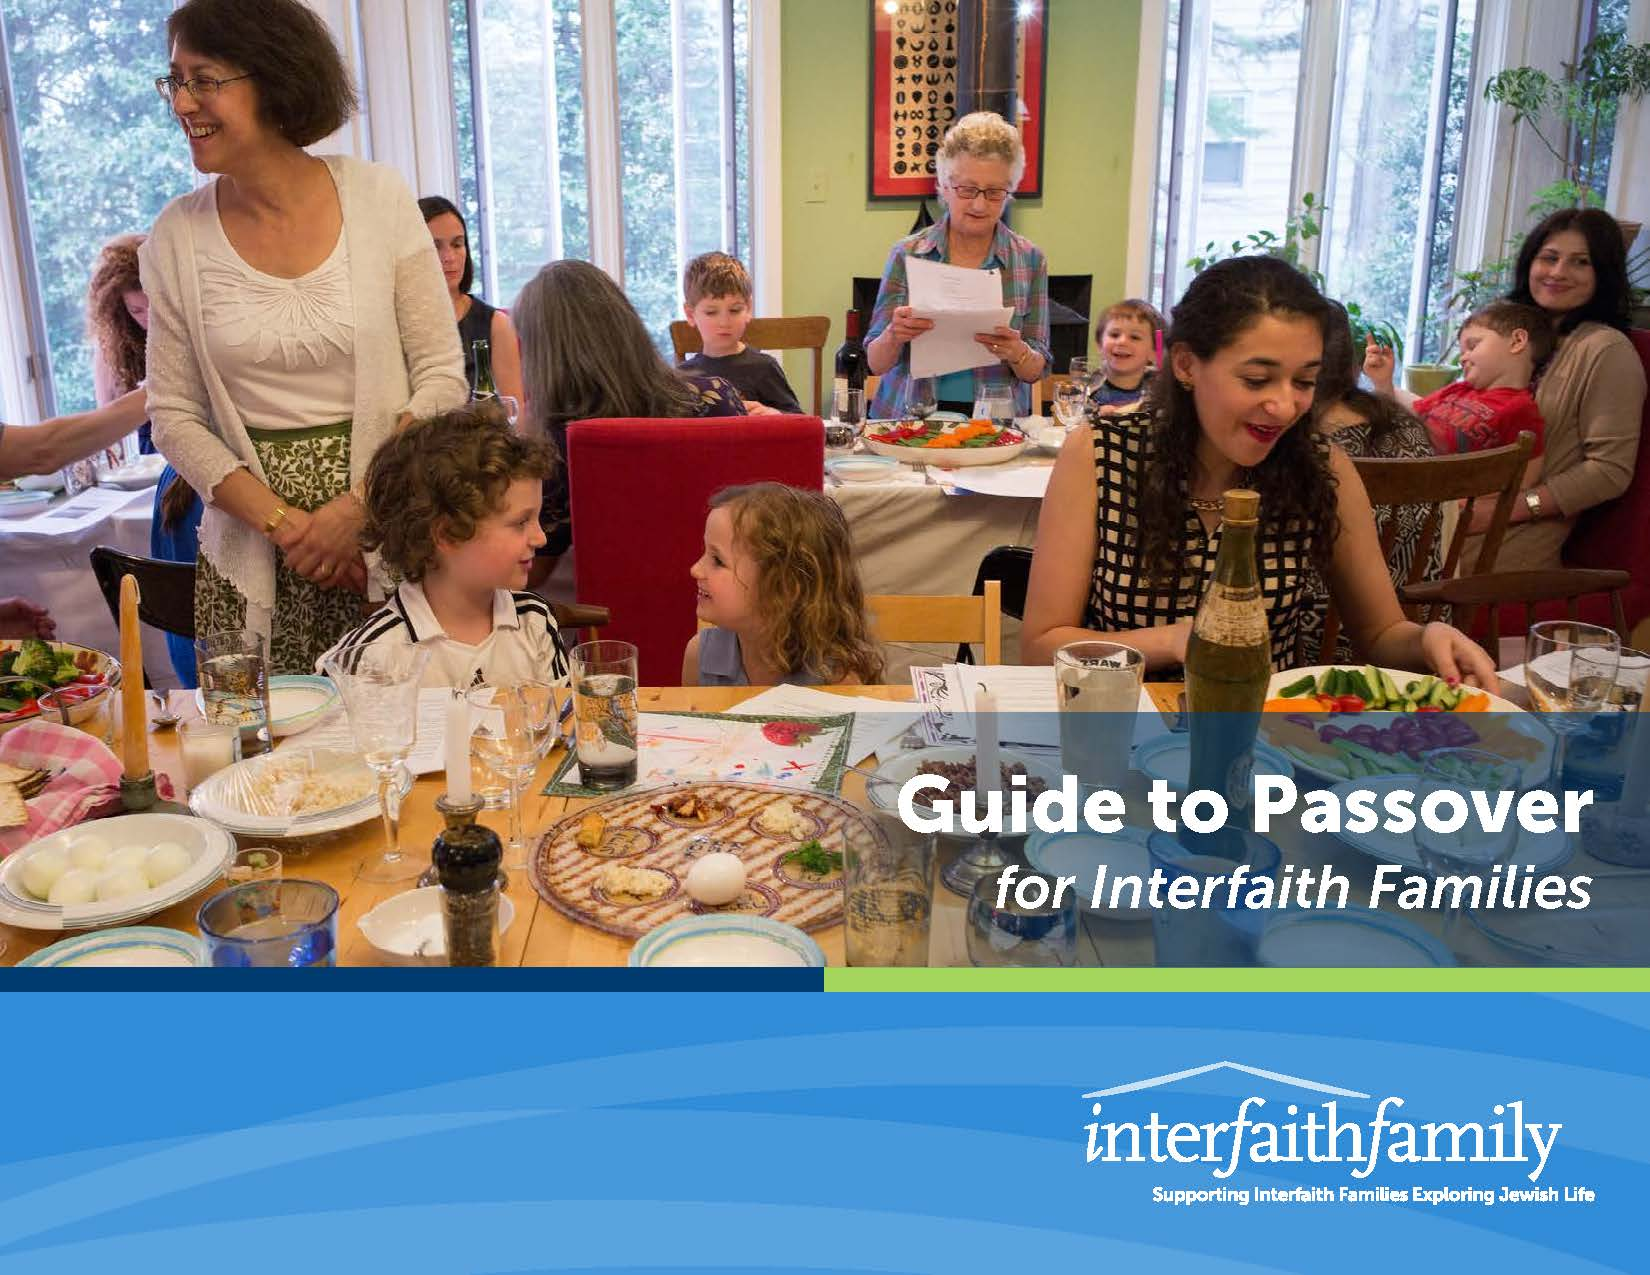 Guide to Passover